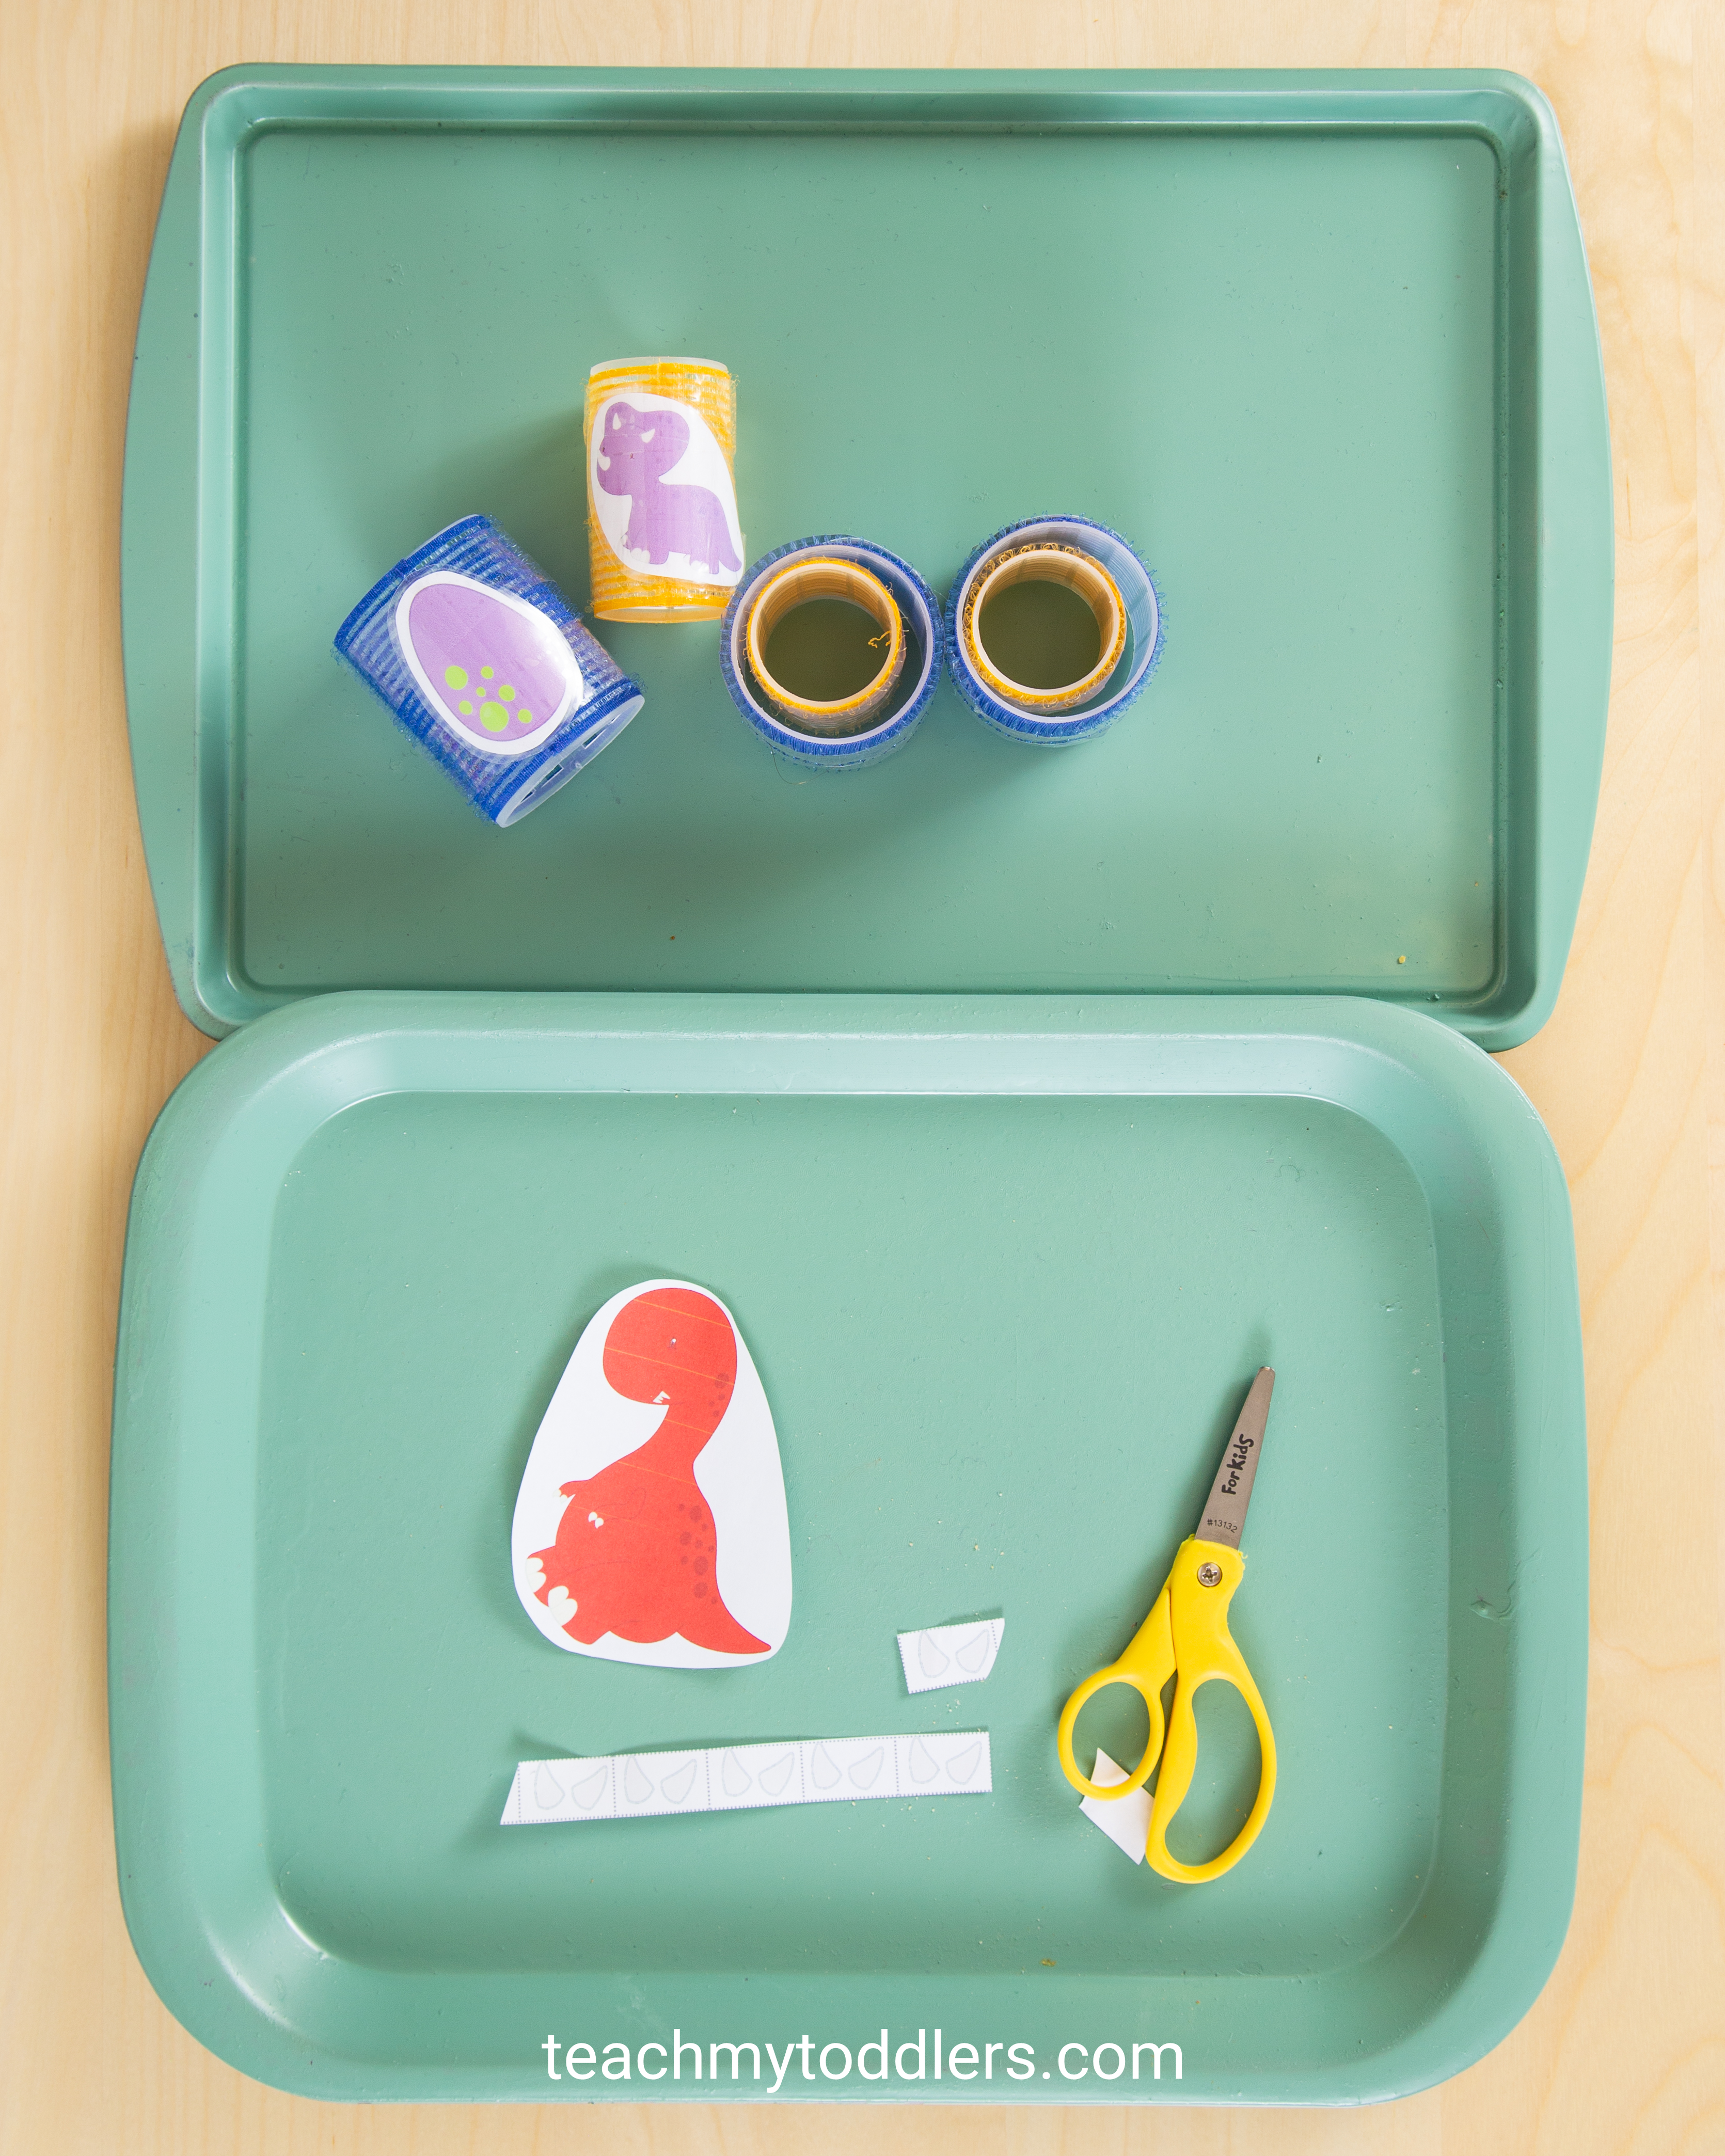 These toddler trays are unique for teaching toddler the letter e is for extinct